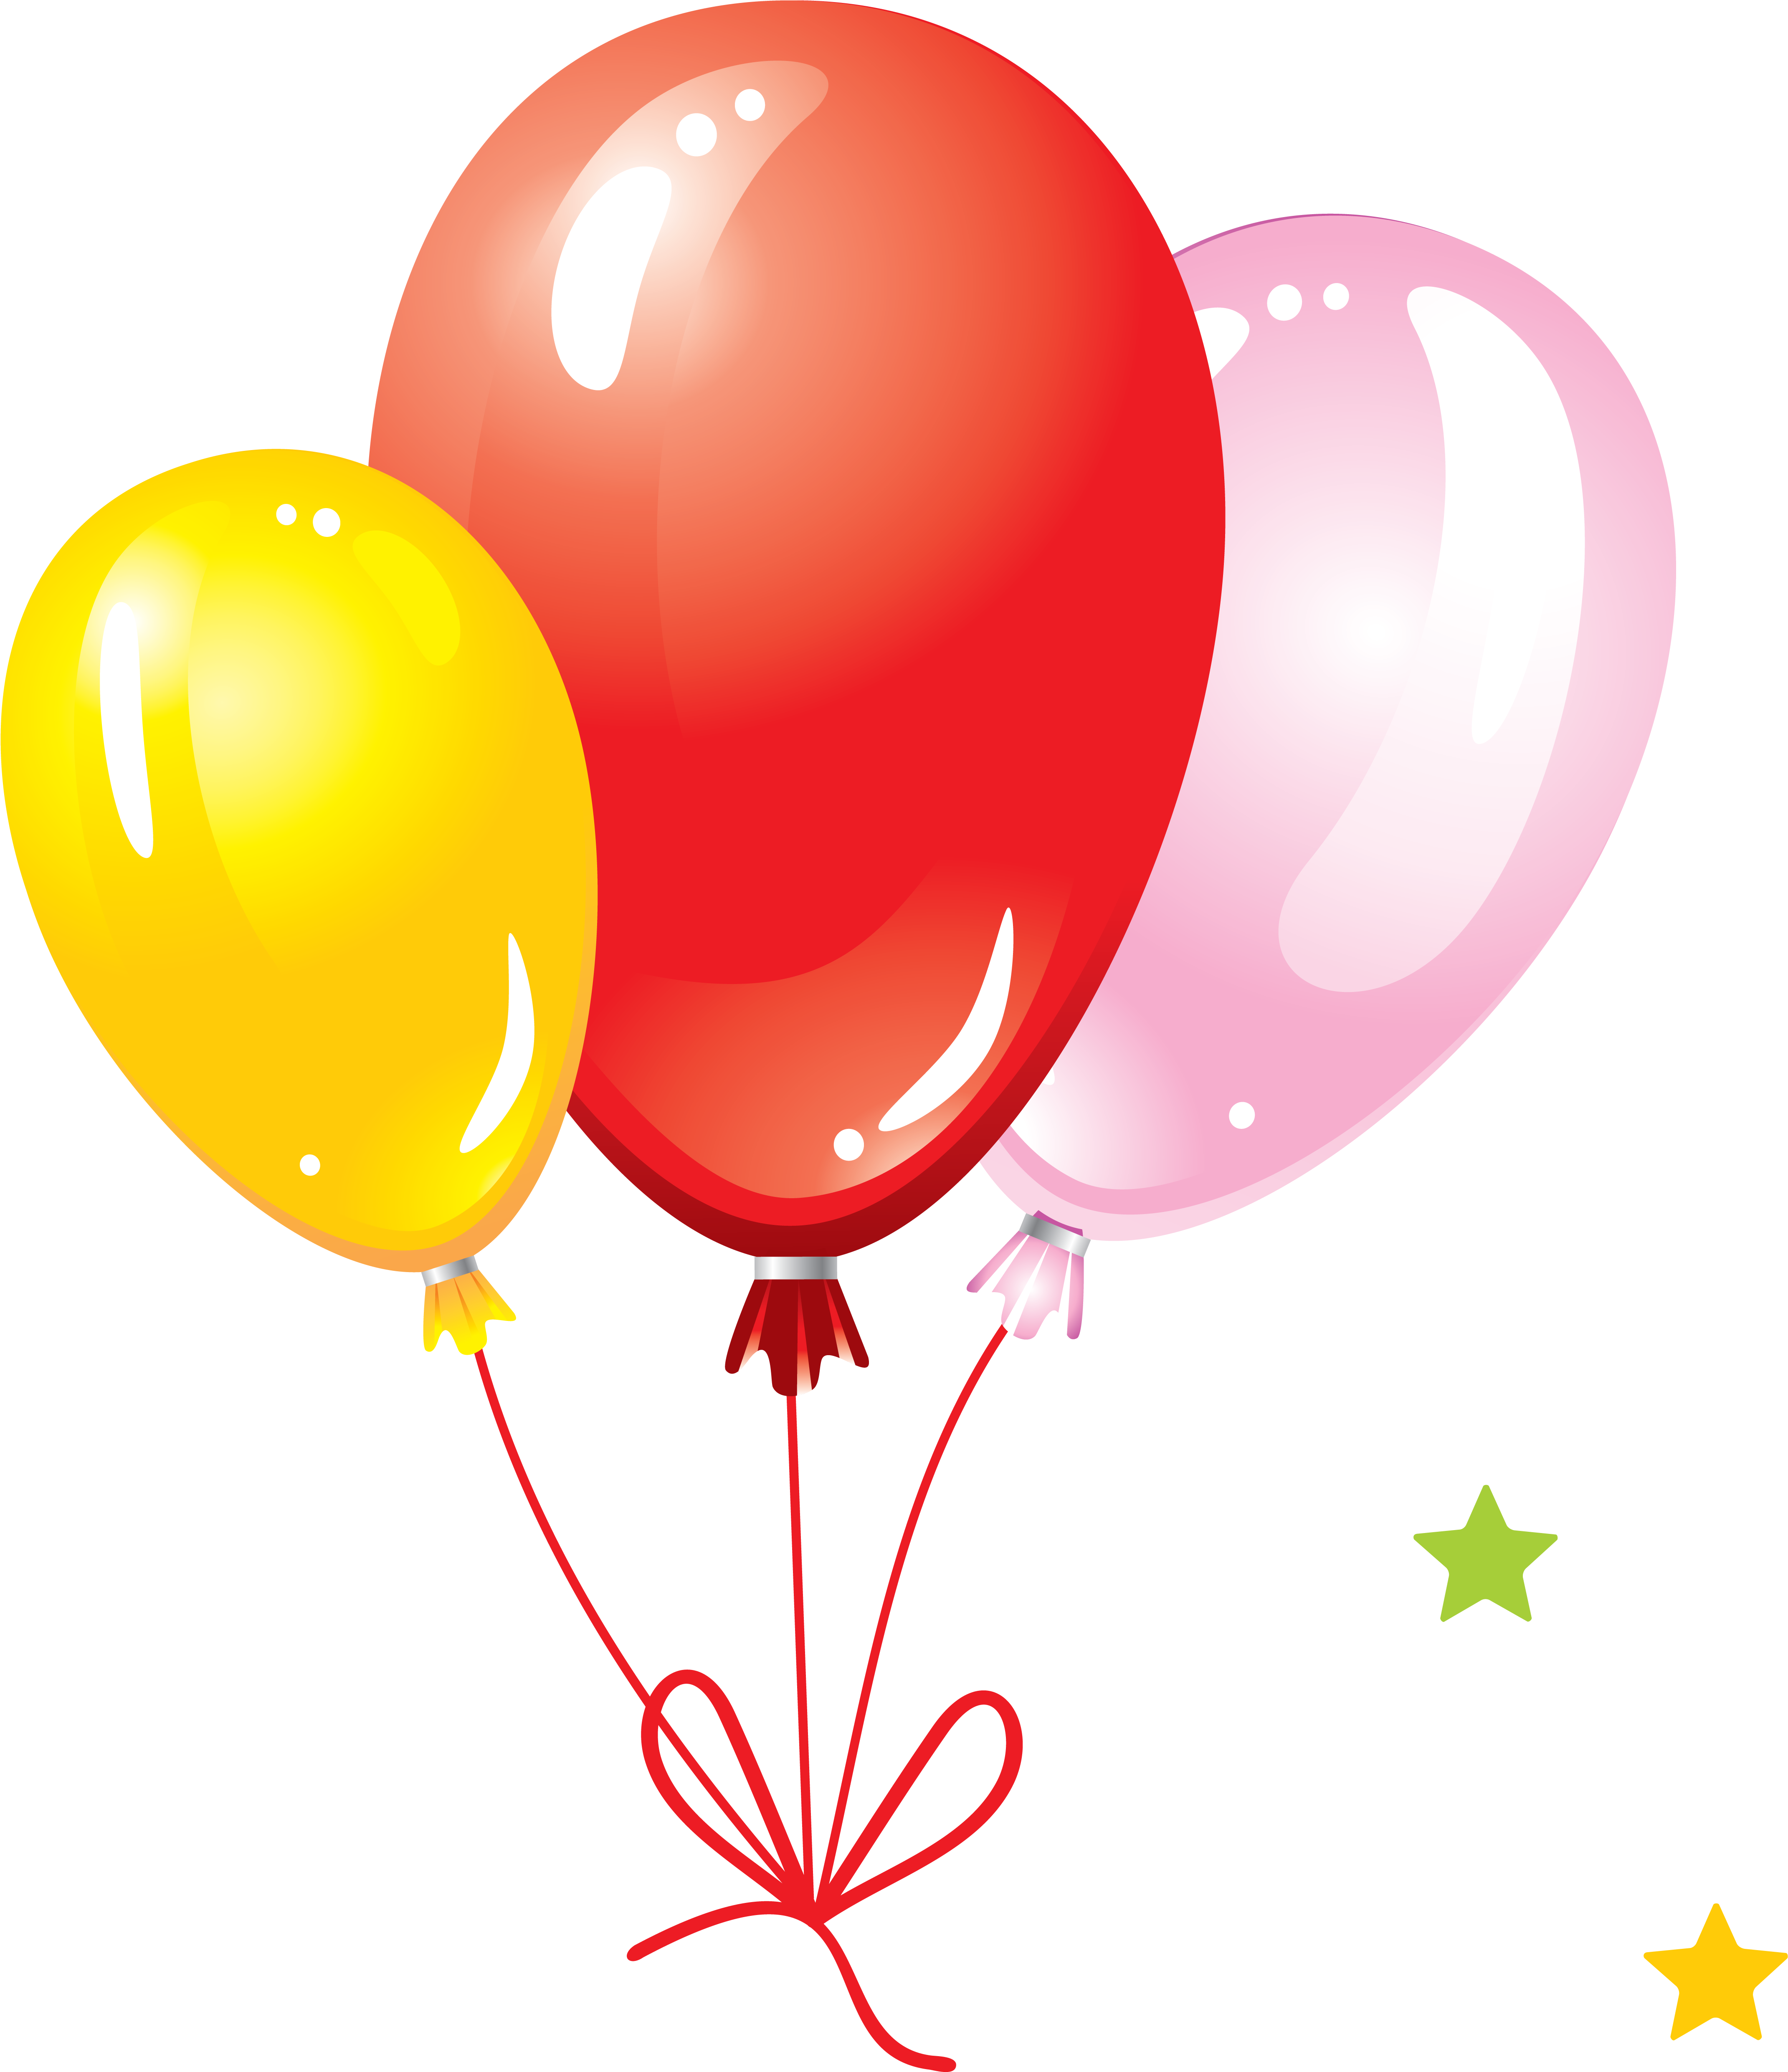 Balloon Png Image, Free Download, Balloons - Birthday With Balloons And Cake (4369x4972)